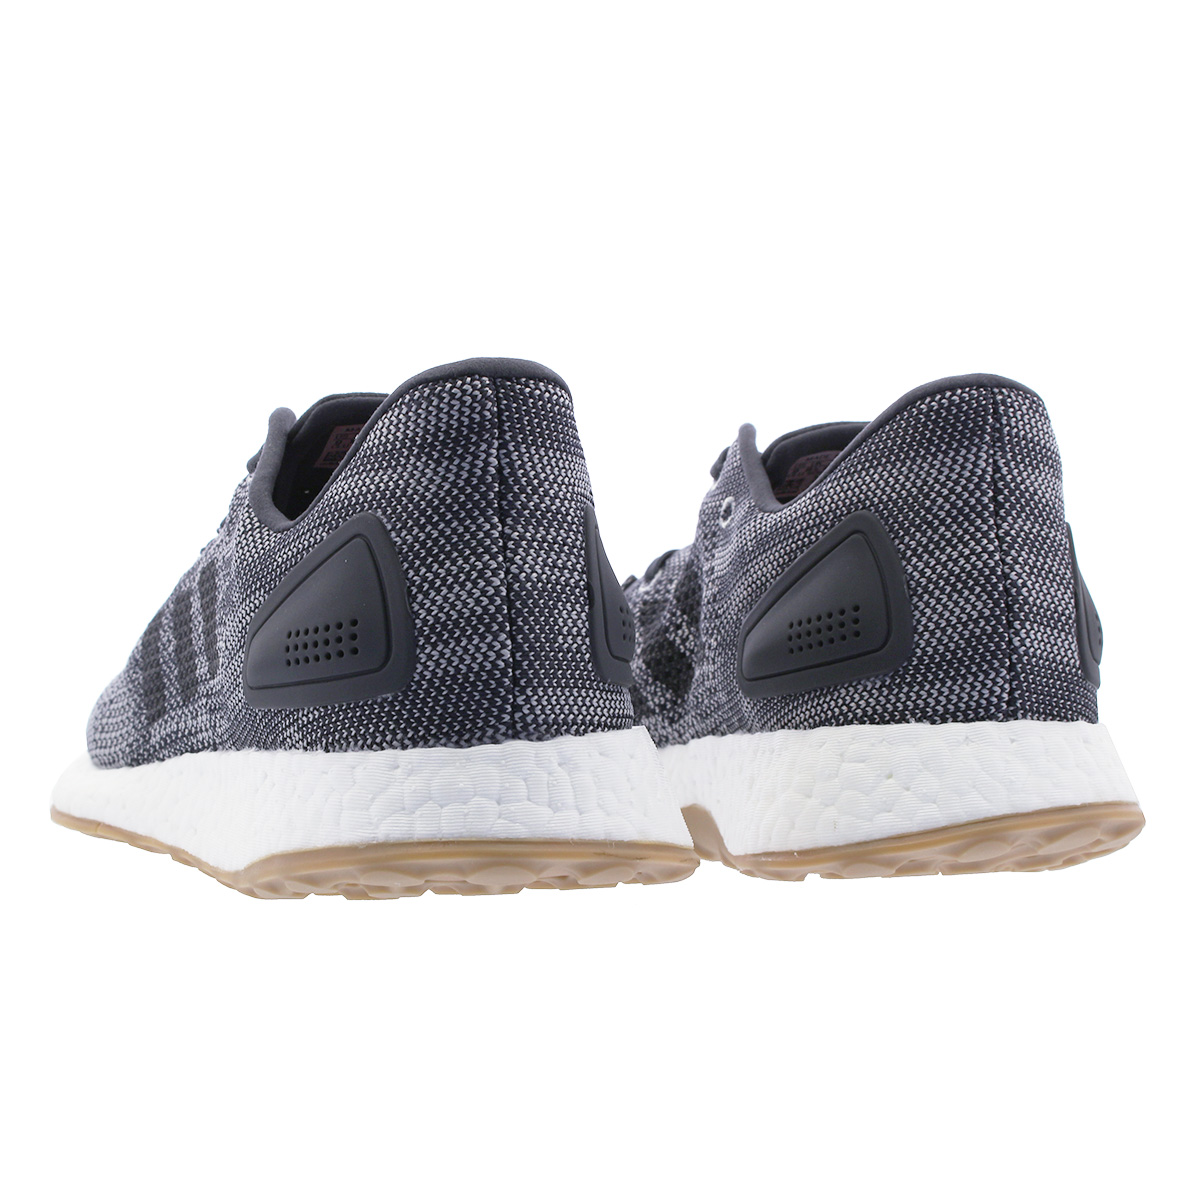 new style 8178f 33e15 SELECT SHOP LOWTEX  adidas PureBOOST DPR Adidas pure boost DPR  CARBON BLACK GREY   Rakuten Global Market